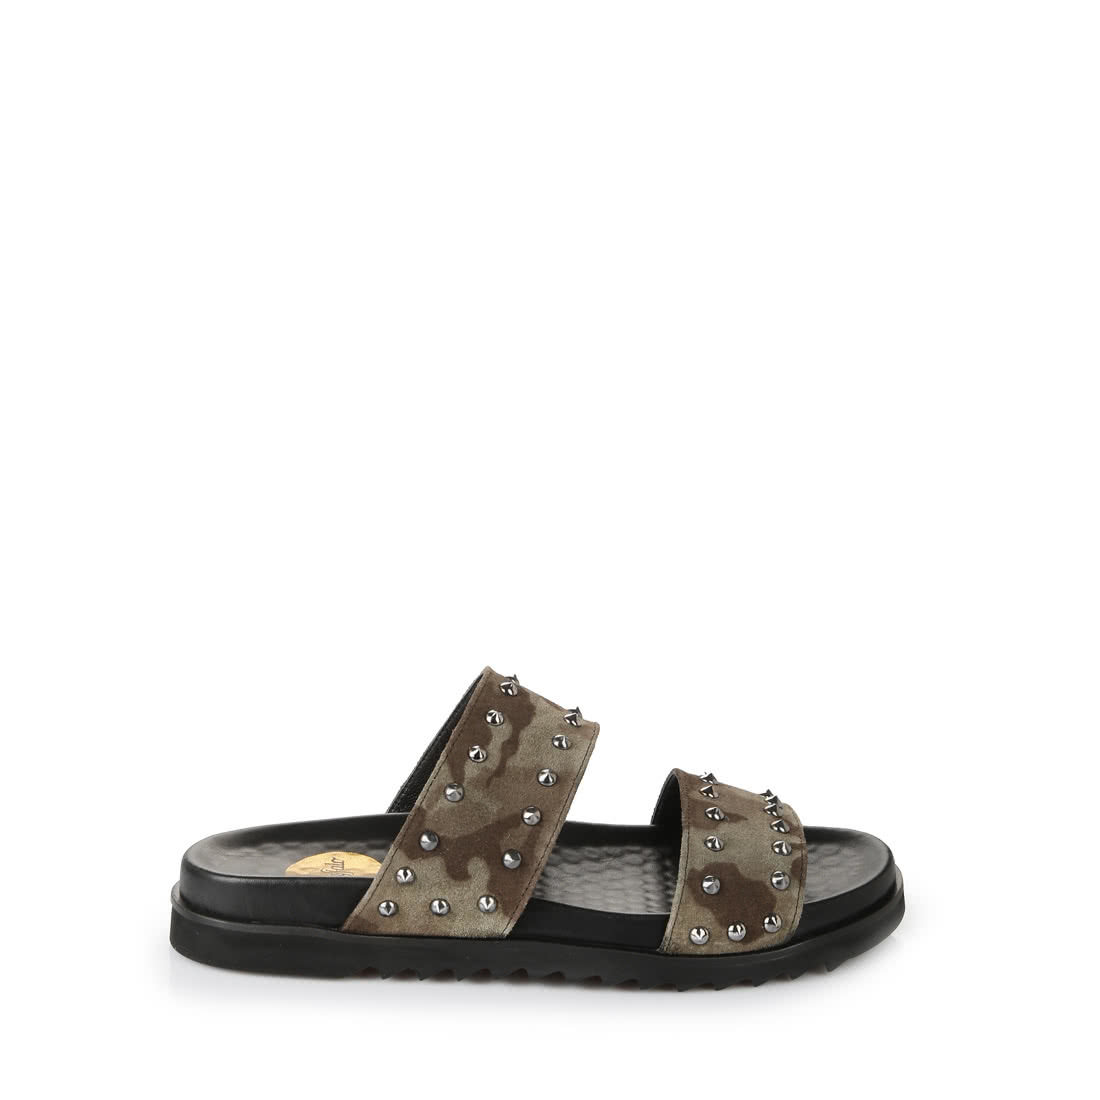 f458587f6 Buffalo men sandals in camouflage green buy online in buffalo jpg 1100x1100  Mens sandals